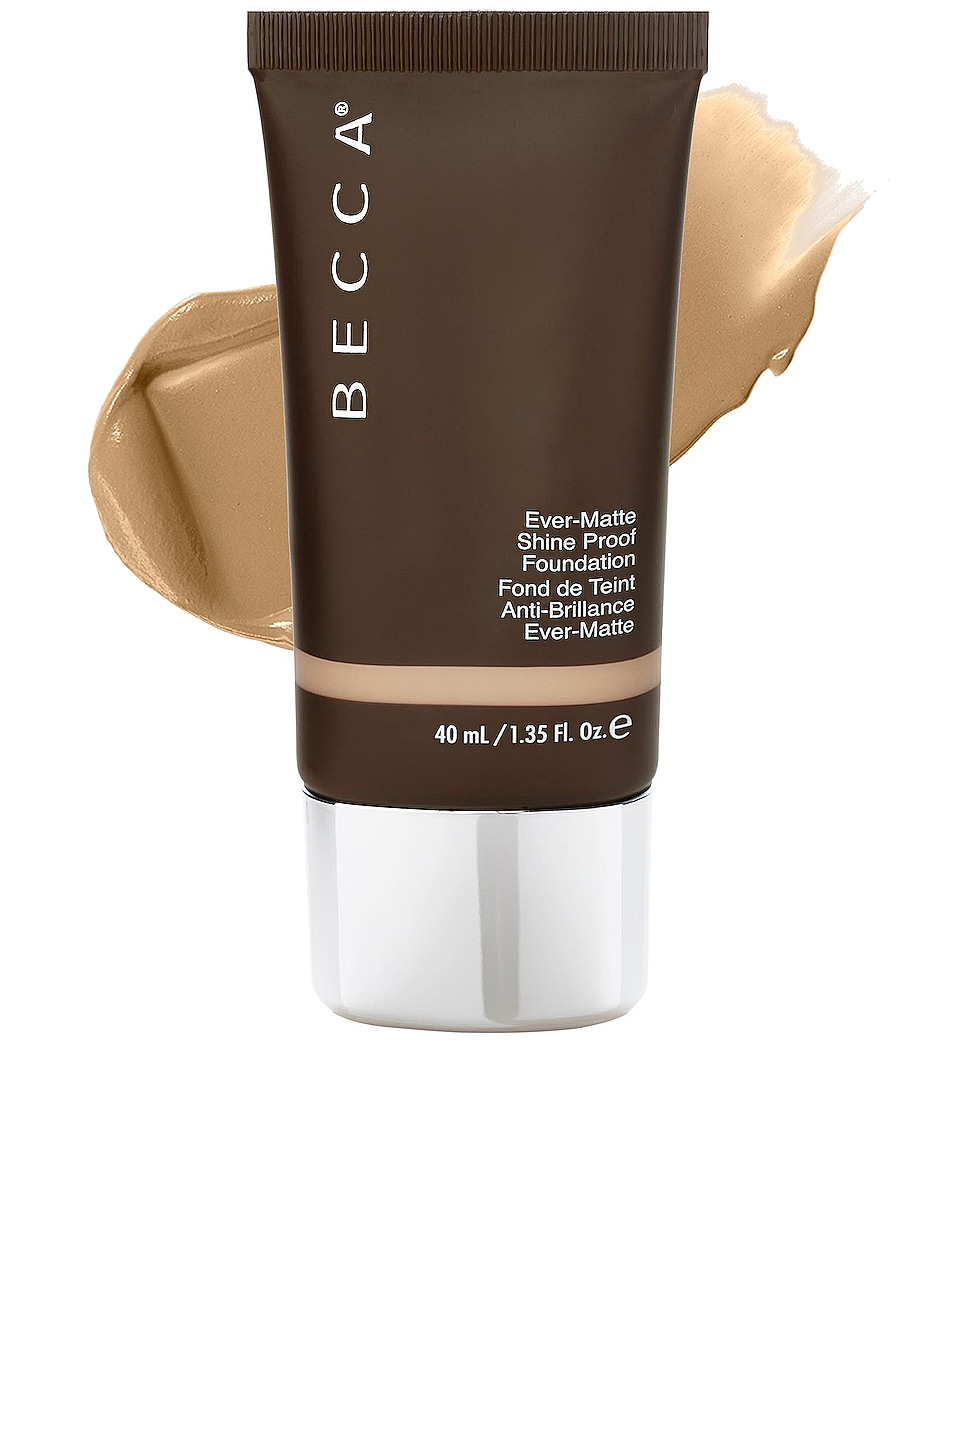 BECCA Ever-Matte Shine Proof Foundation in Tan